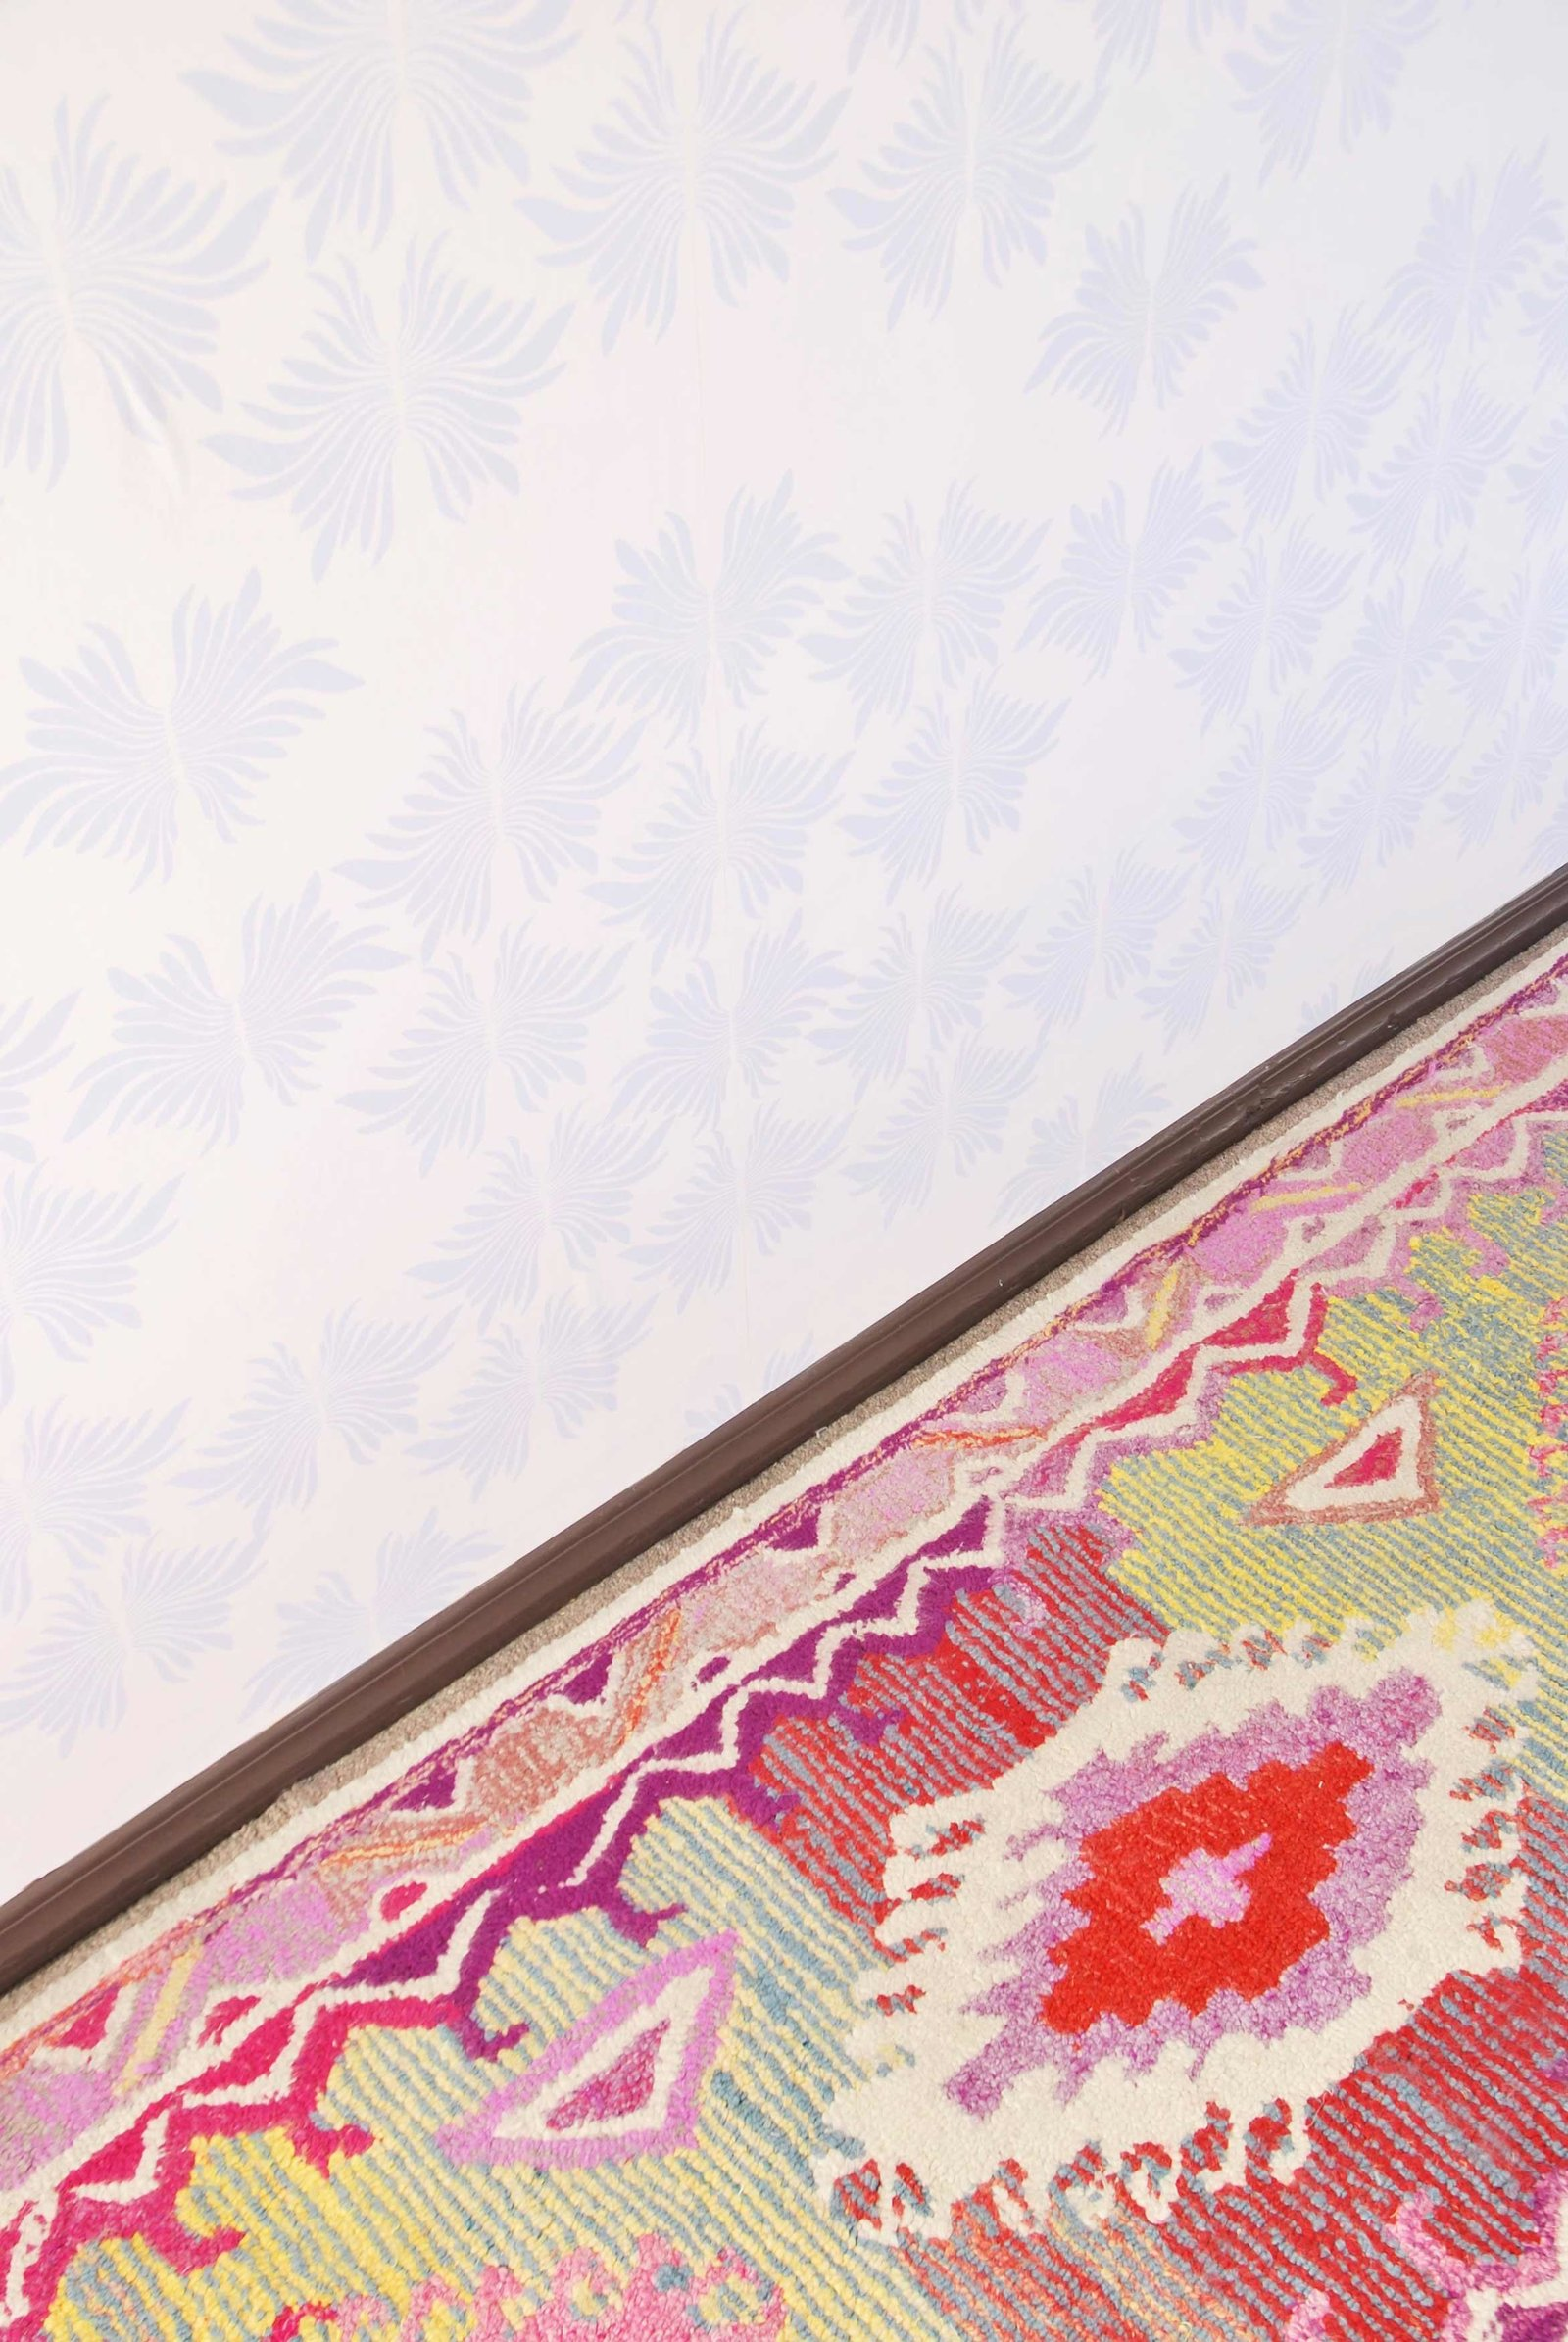 A colorful patterned rug next to an abstract wall papered wall.